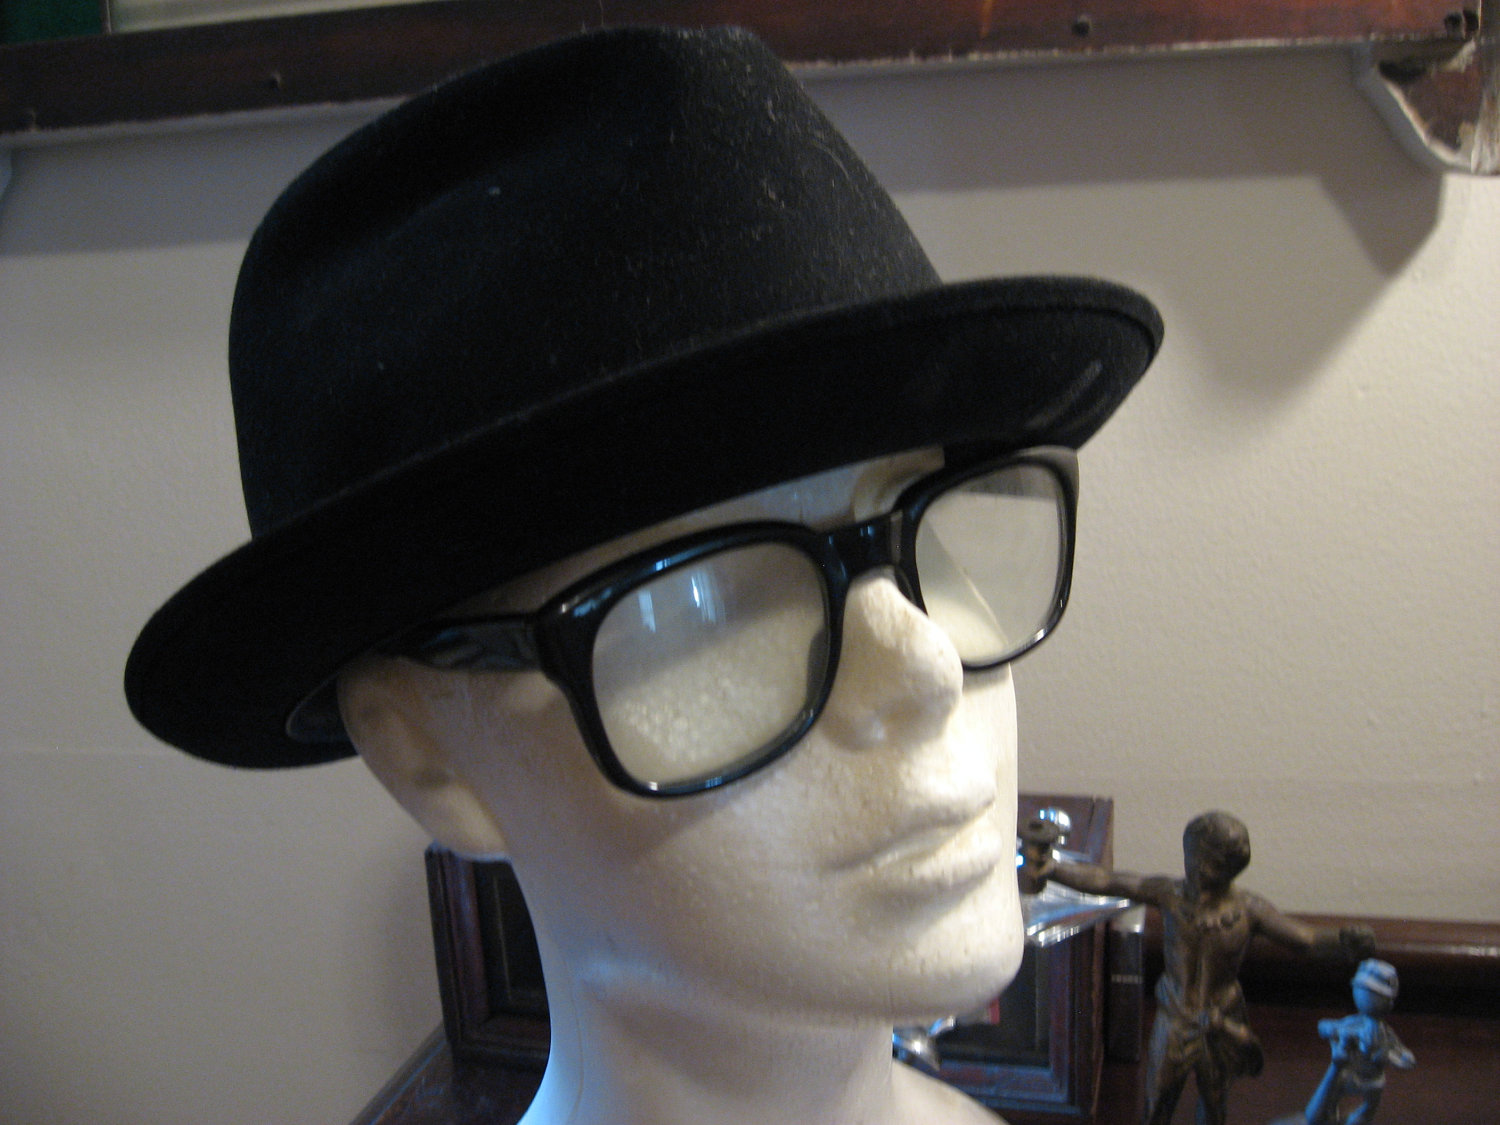 The problem with hipster hats like the Hamburg however is that these